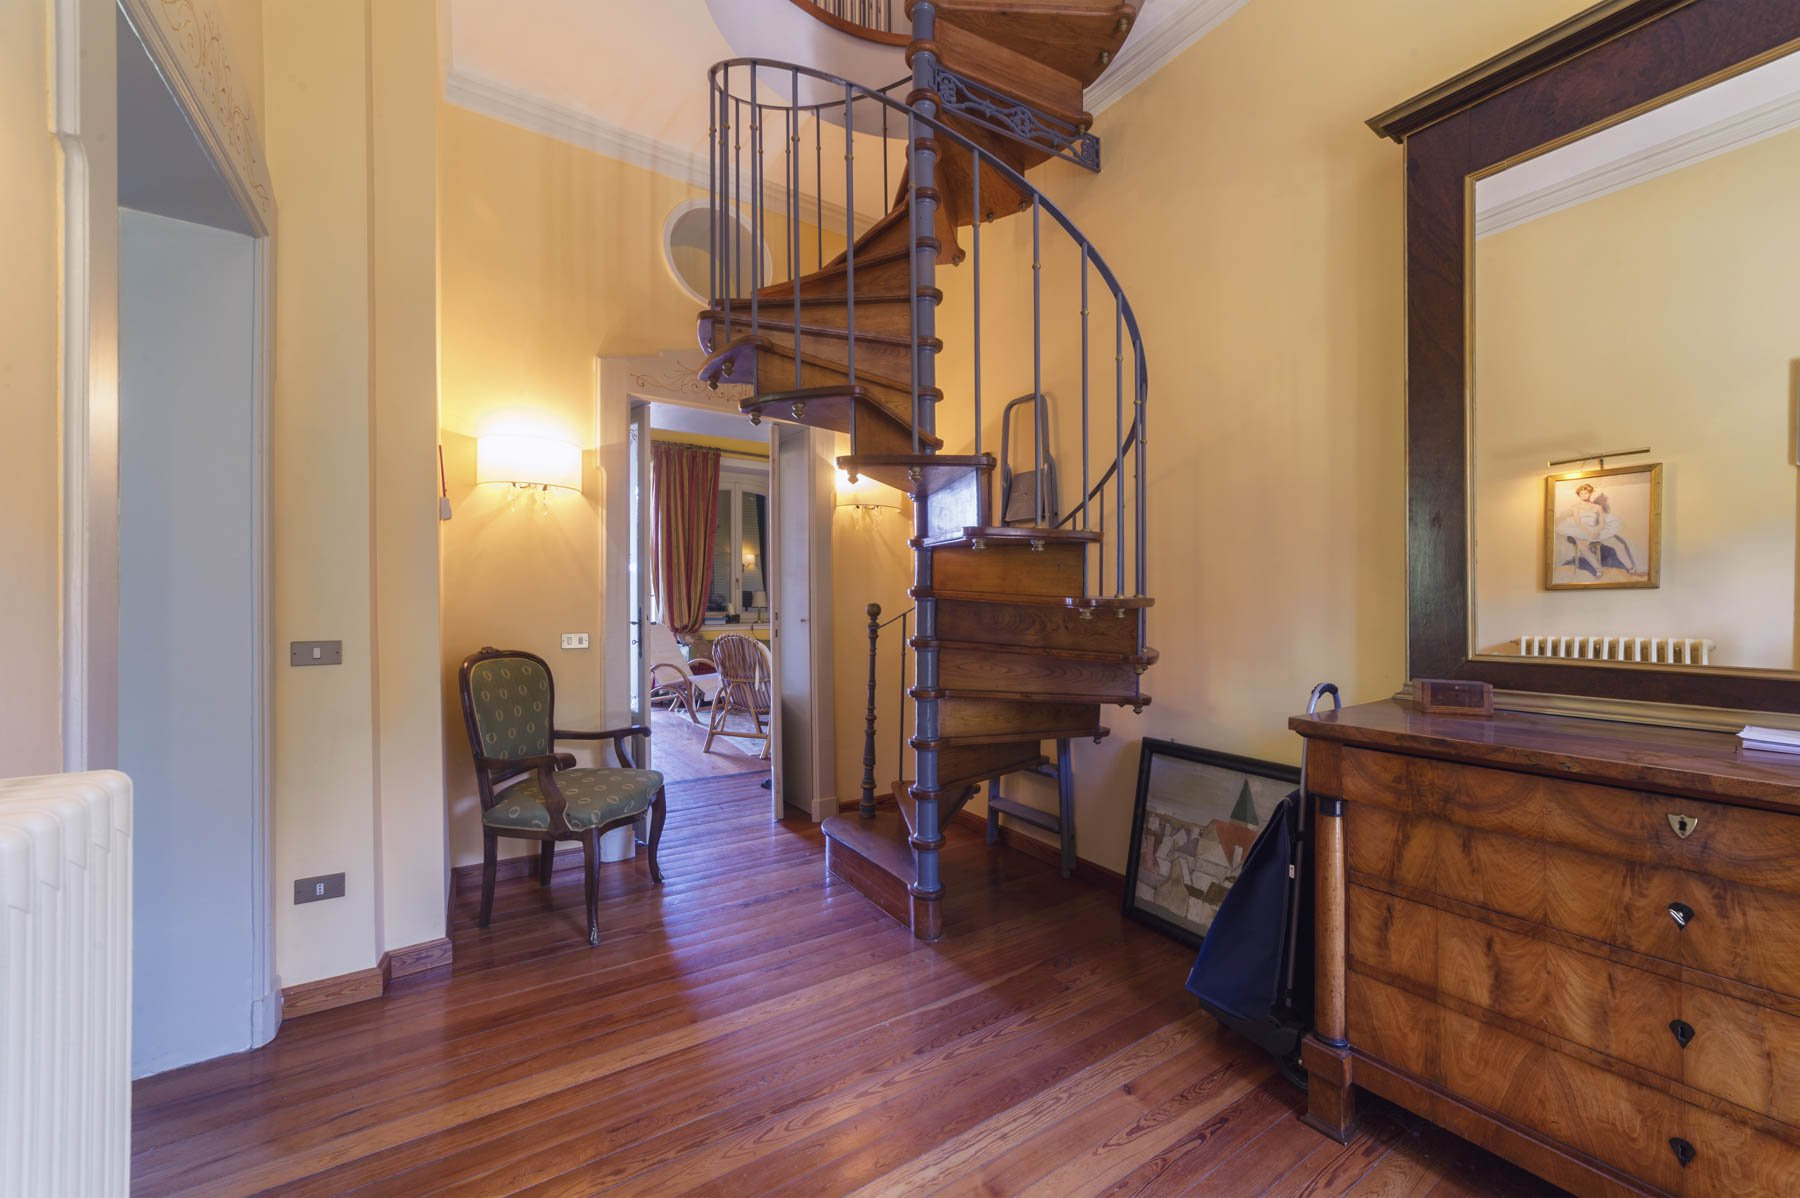 Luxurious apartment for sale in Stresa - intern